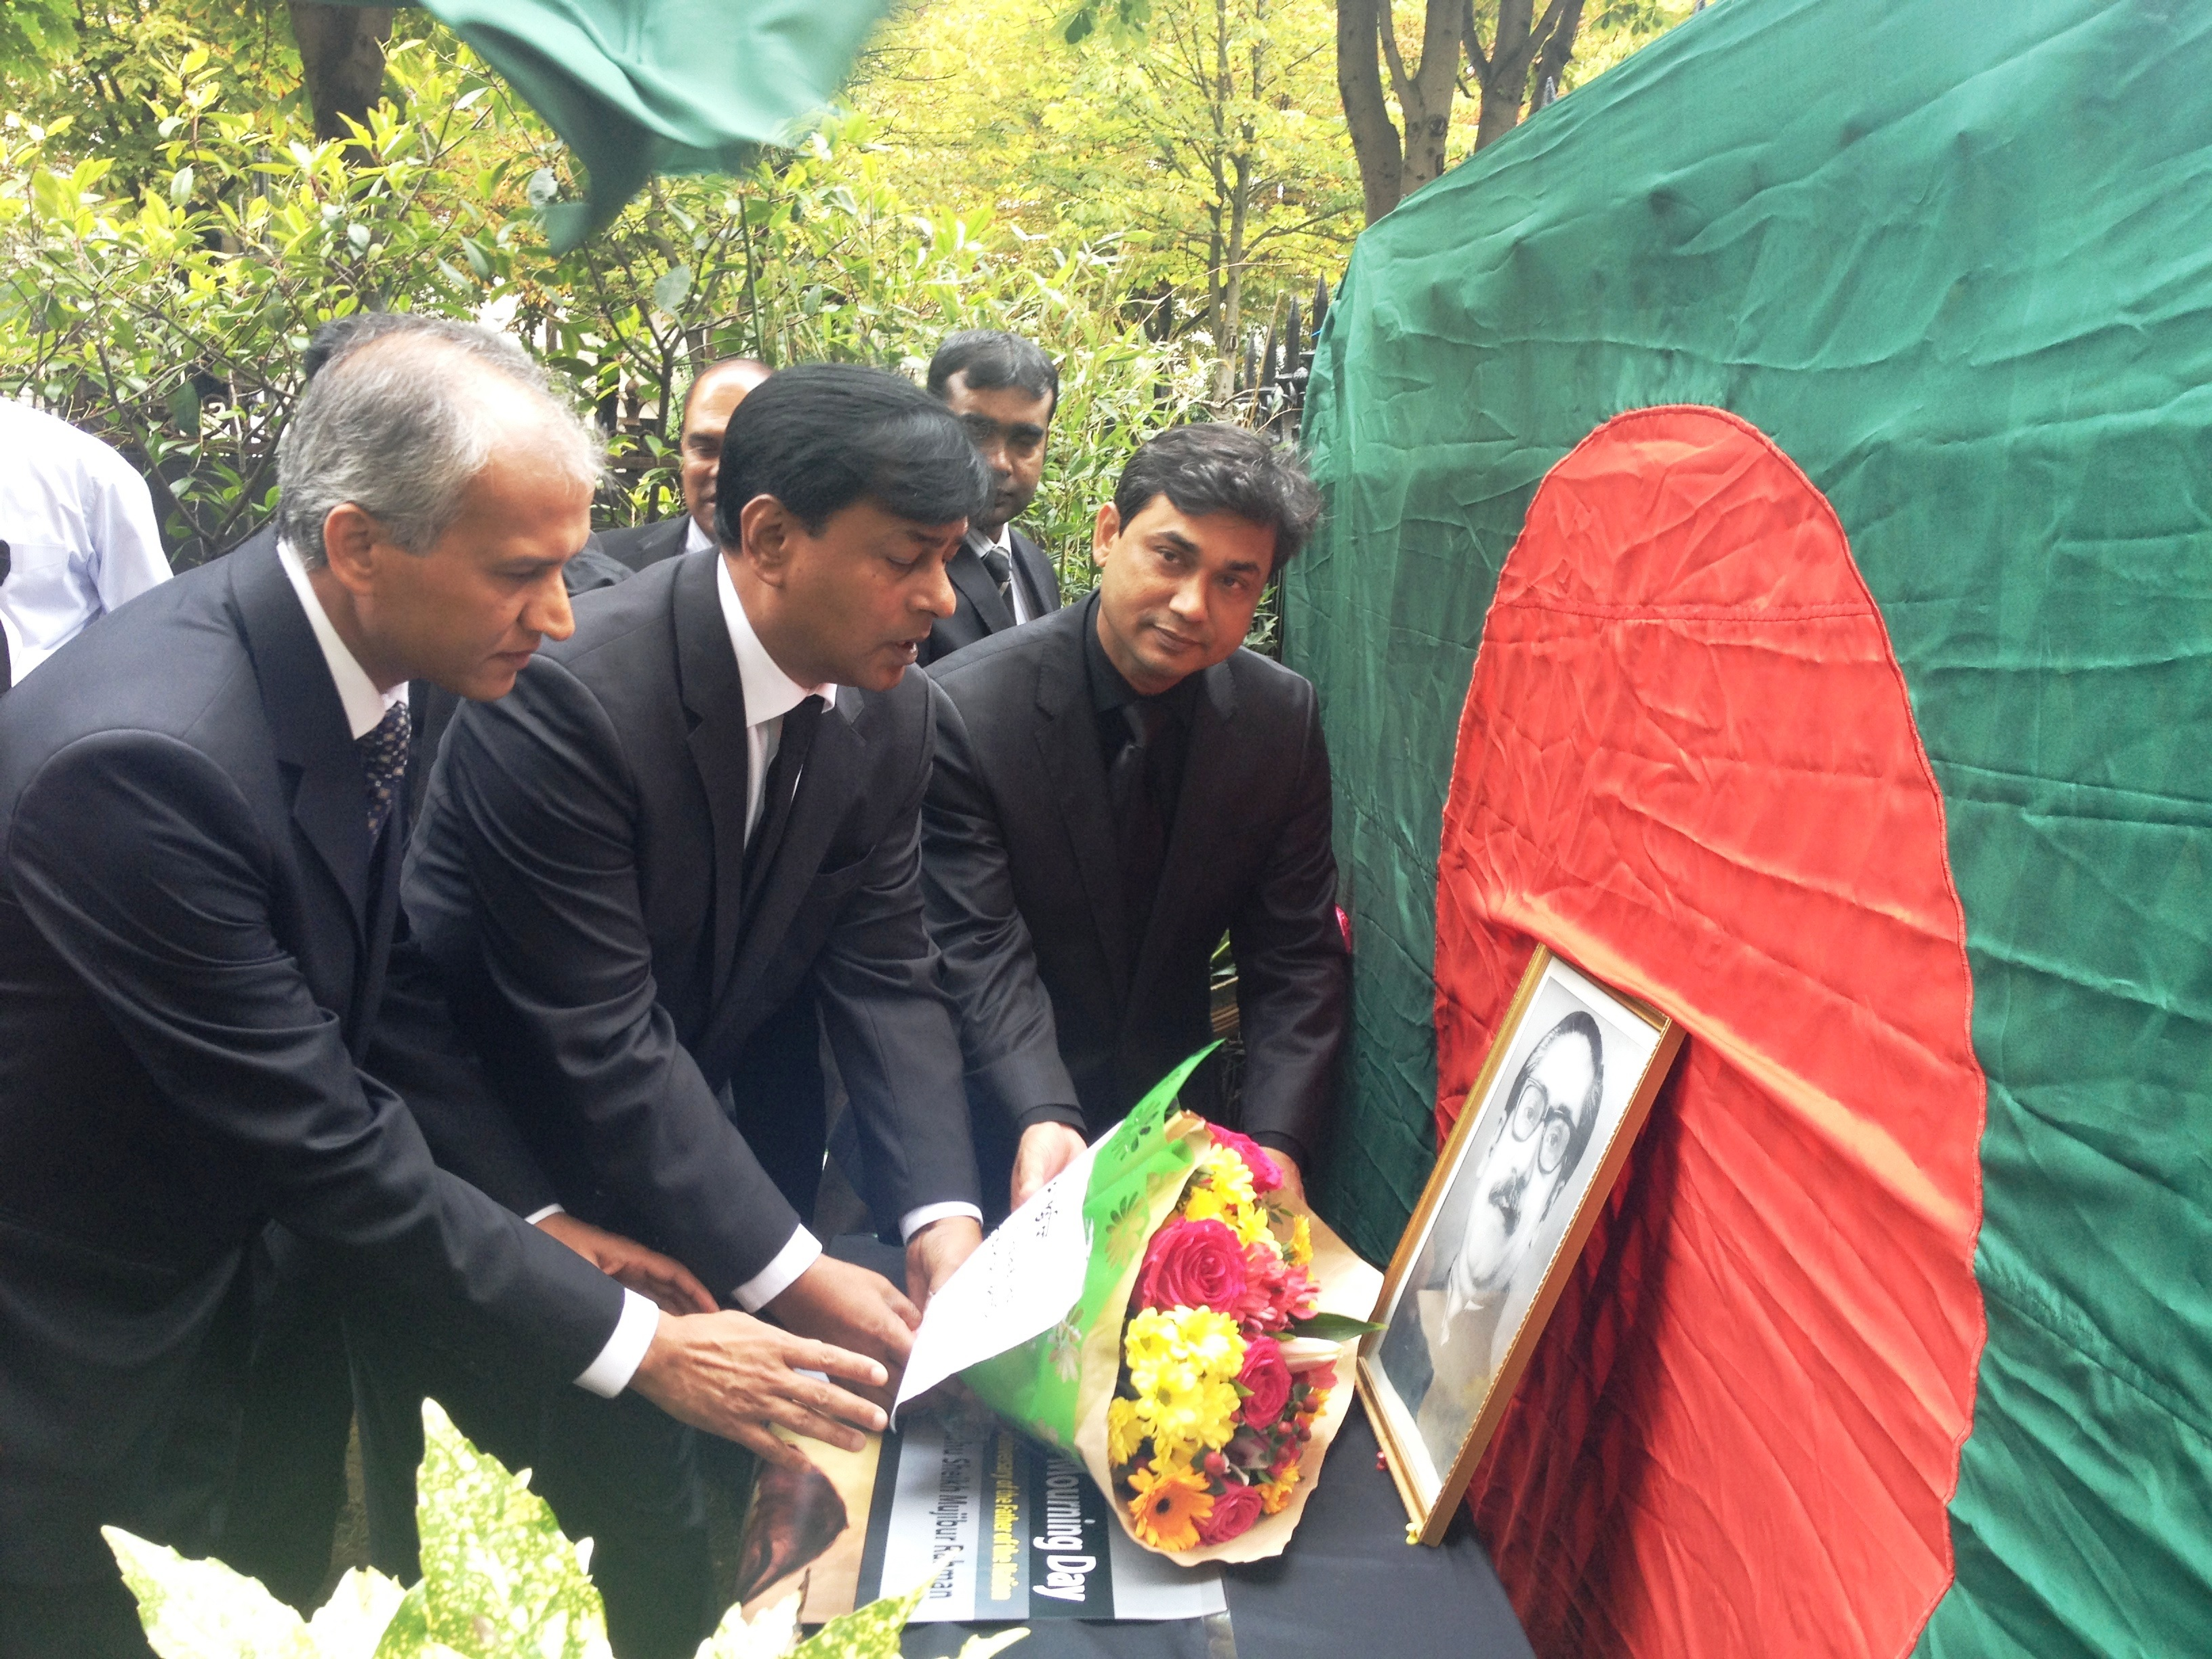 observance-of-the-national-mourning-day-2015-on-the-40th-death-anniversary-of-the-father-of-the-nation-bangabandhu-sheikh-mujibur-rahman-in-paris